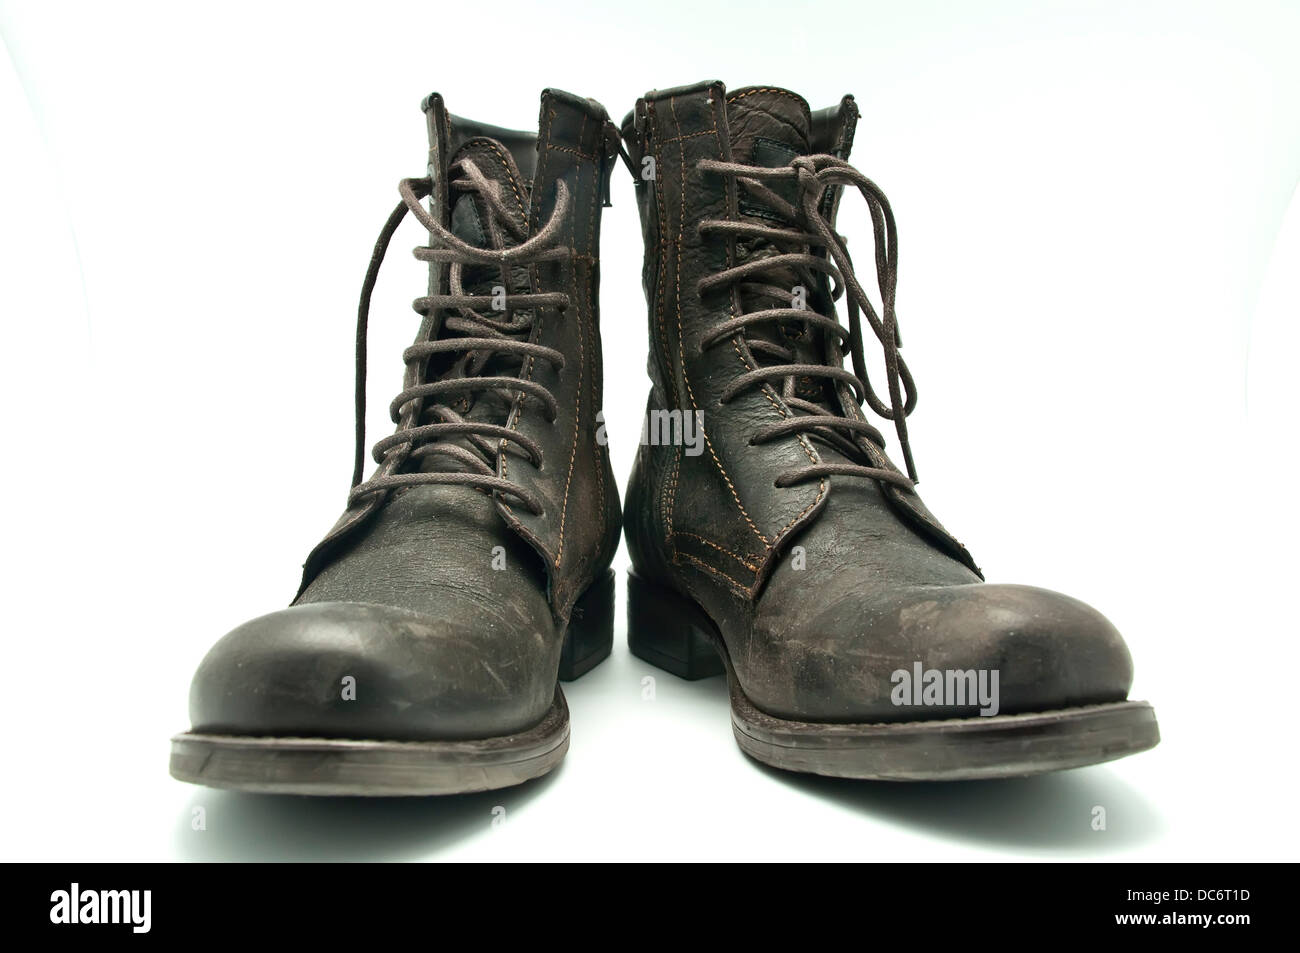 Boots - Stock Image